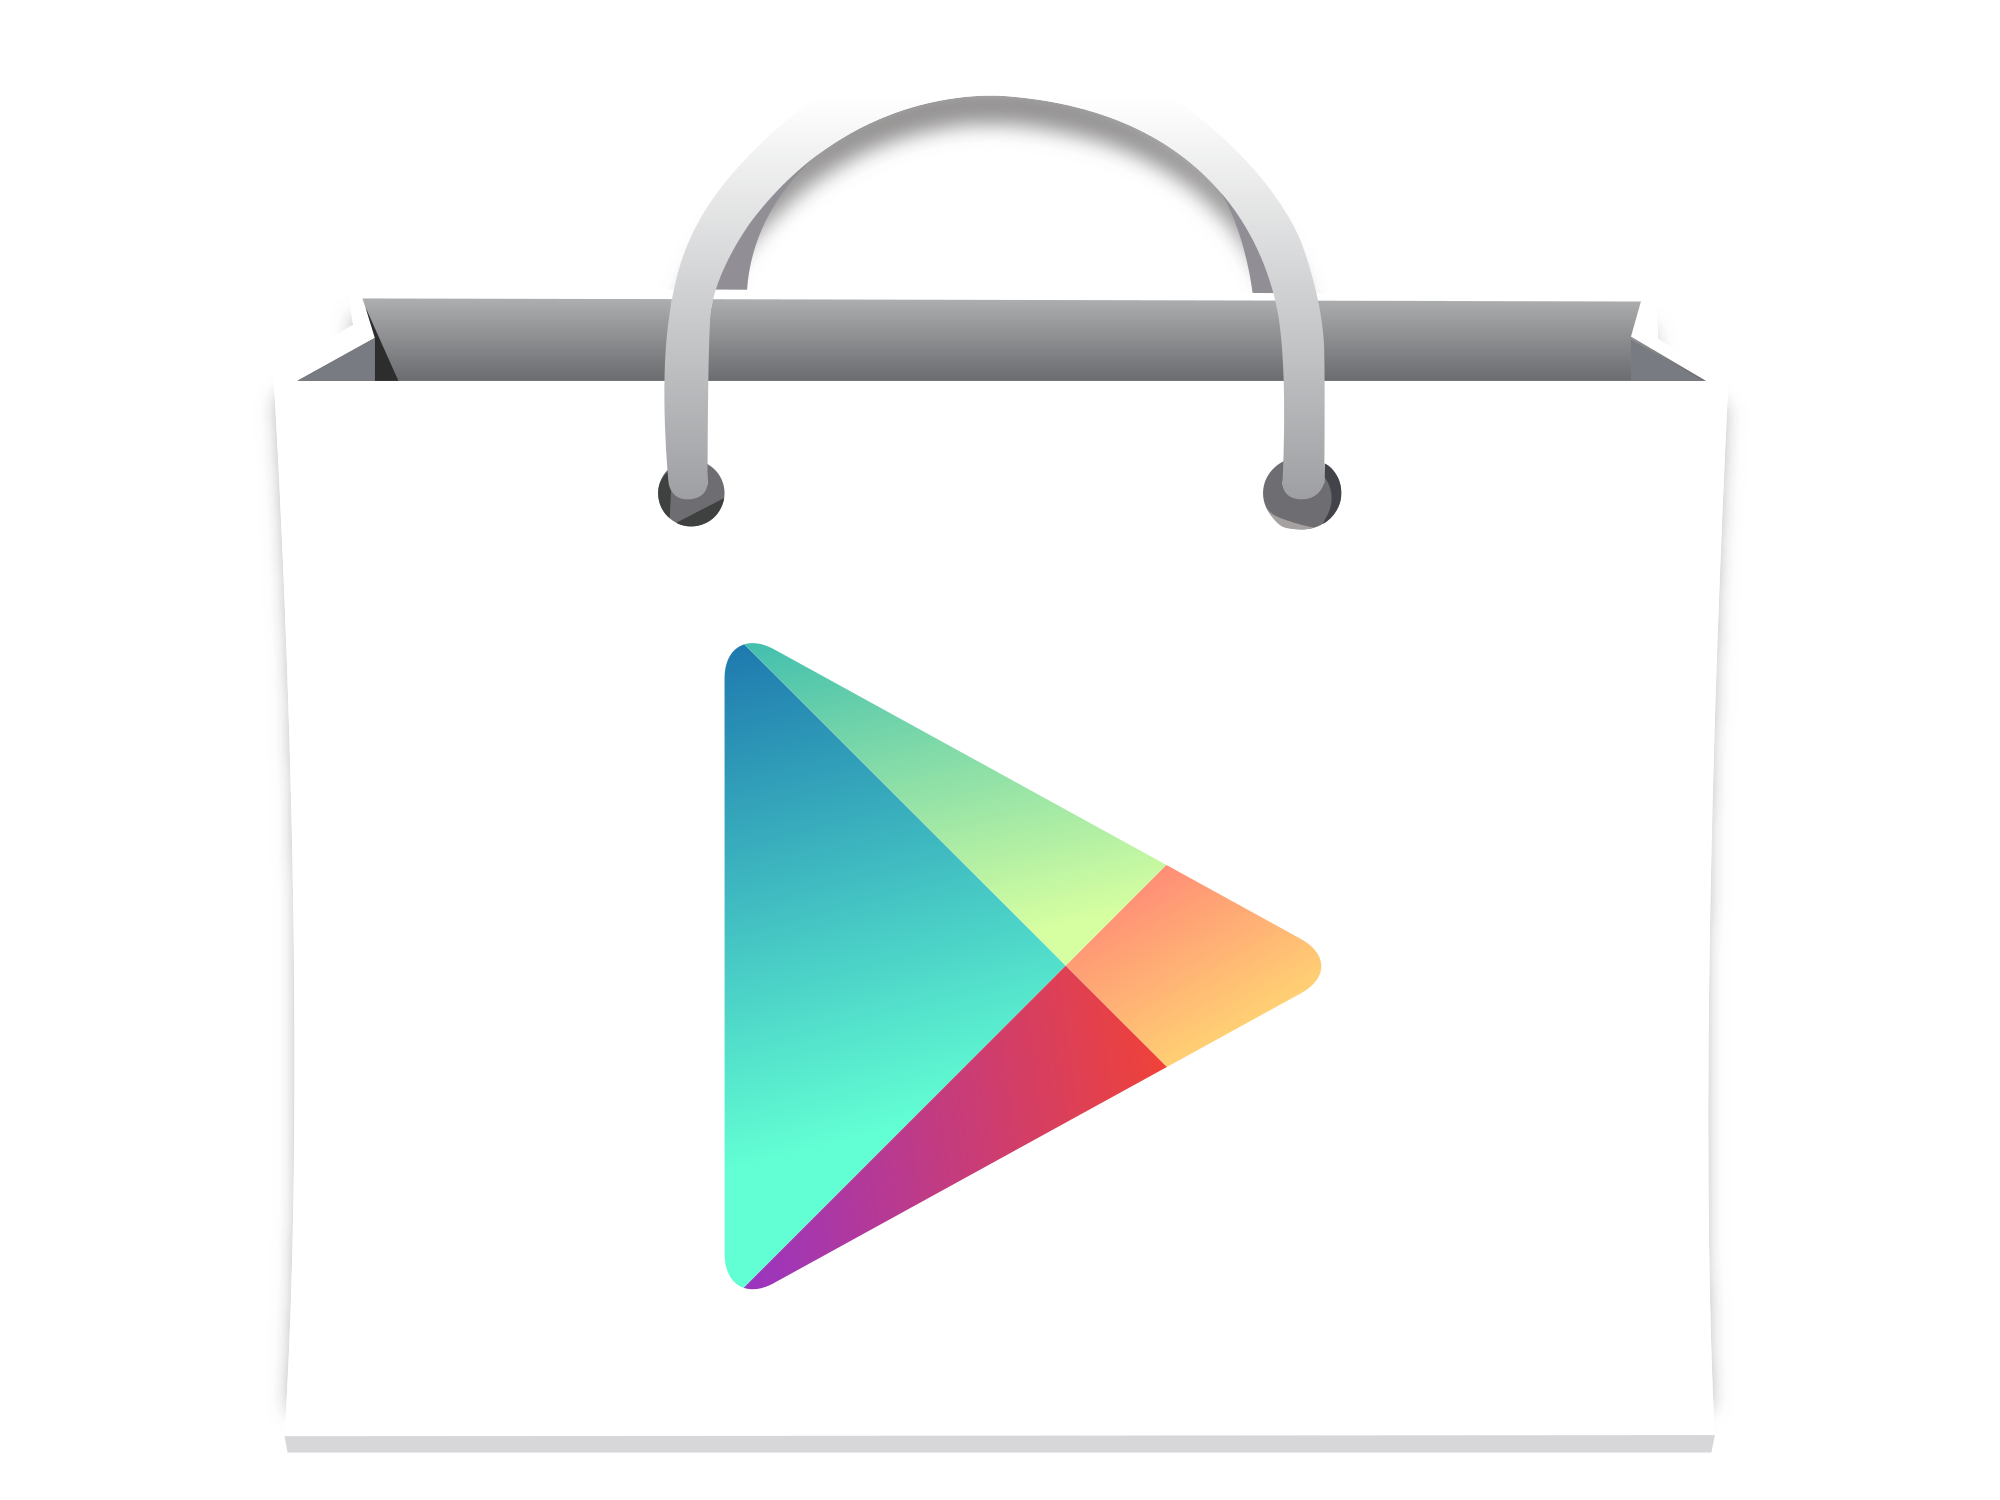 Google play store logo png. File svg wikimedia commons